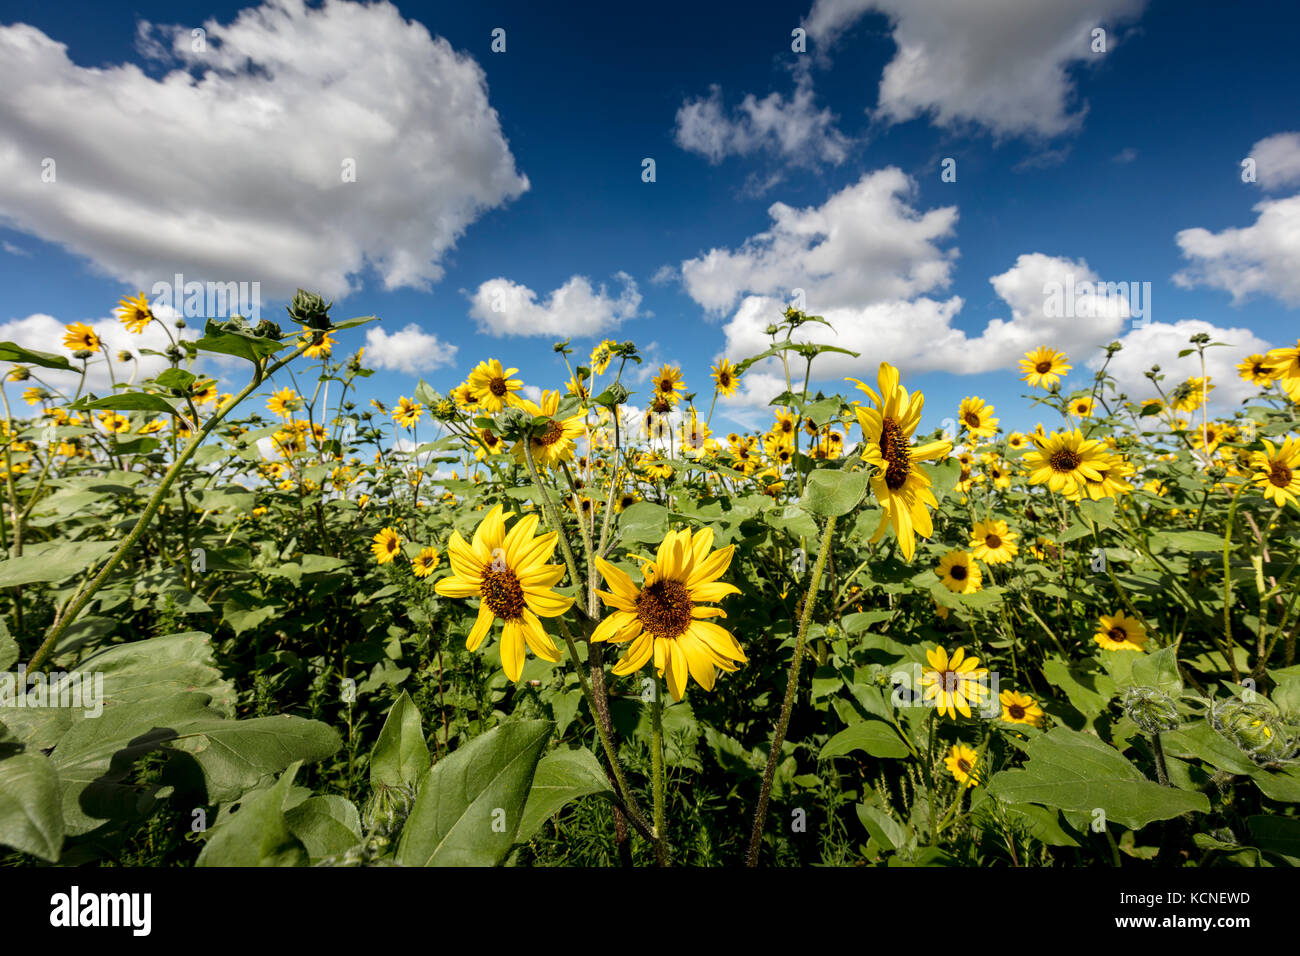 White Facing Weed Annual Crops Stock Photos Amp Annual Crops Stock Images Alamy